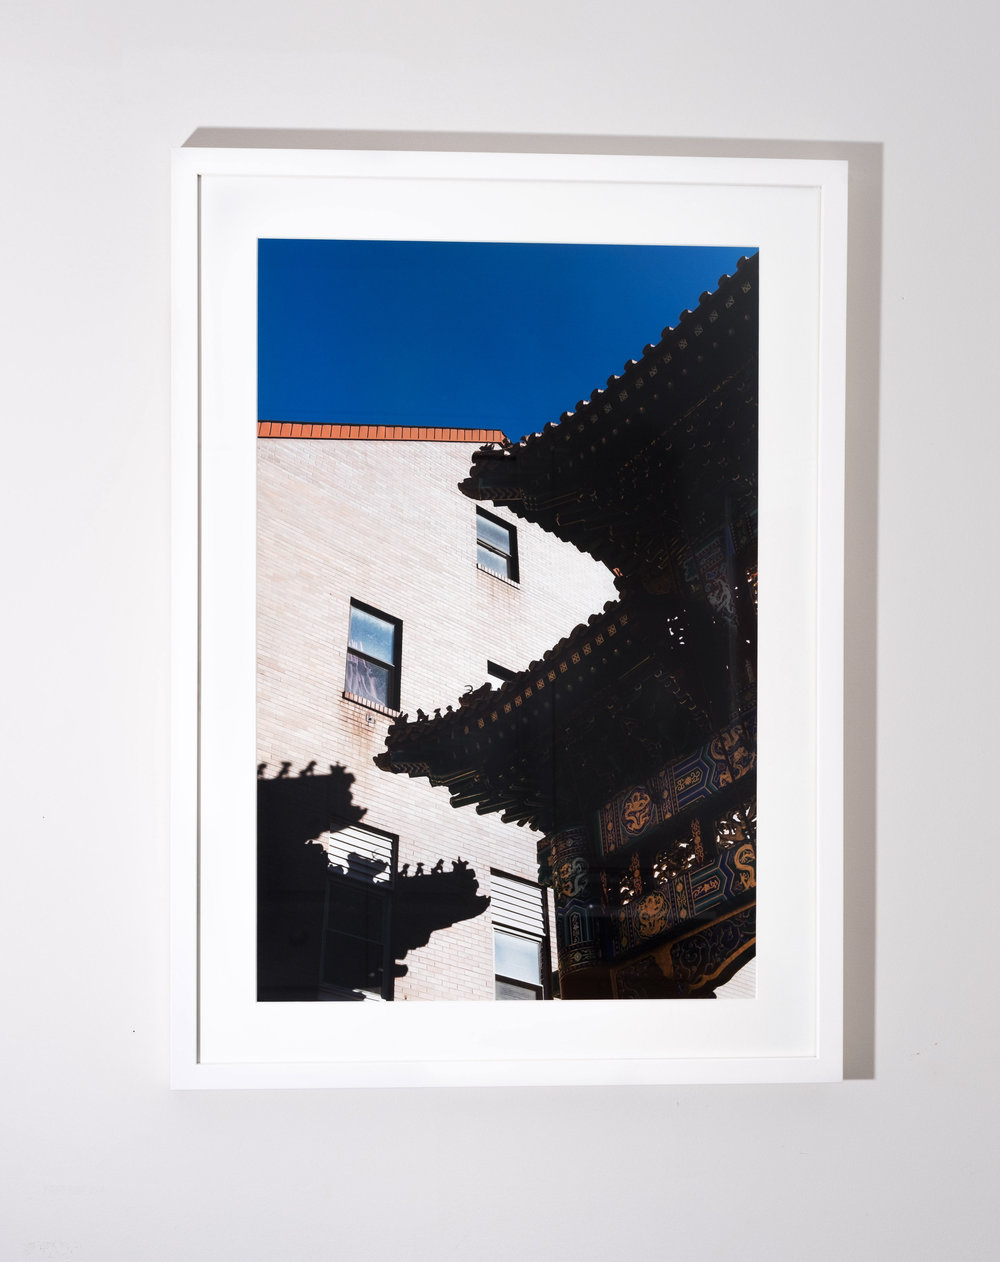 framed-pieces-4.jpg